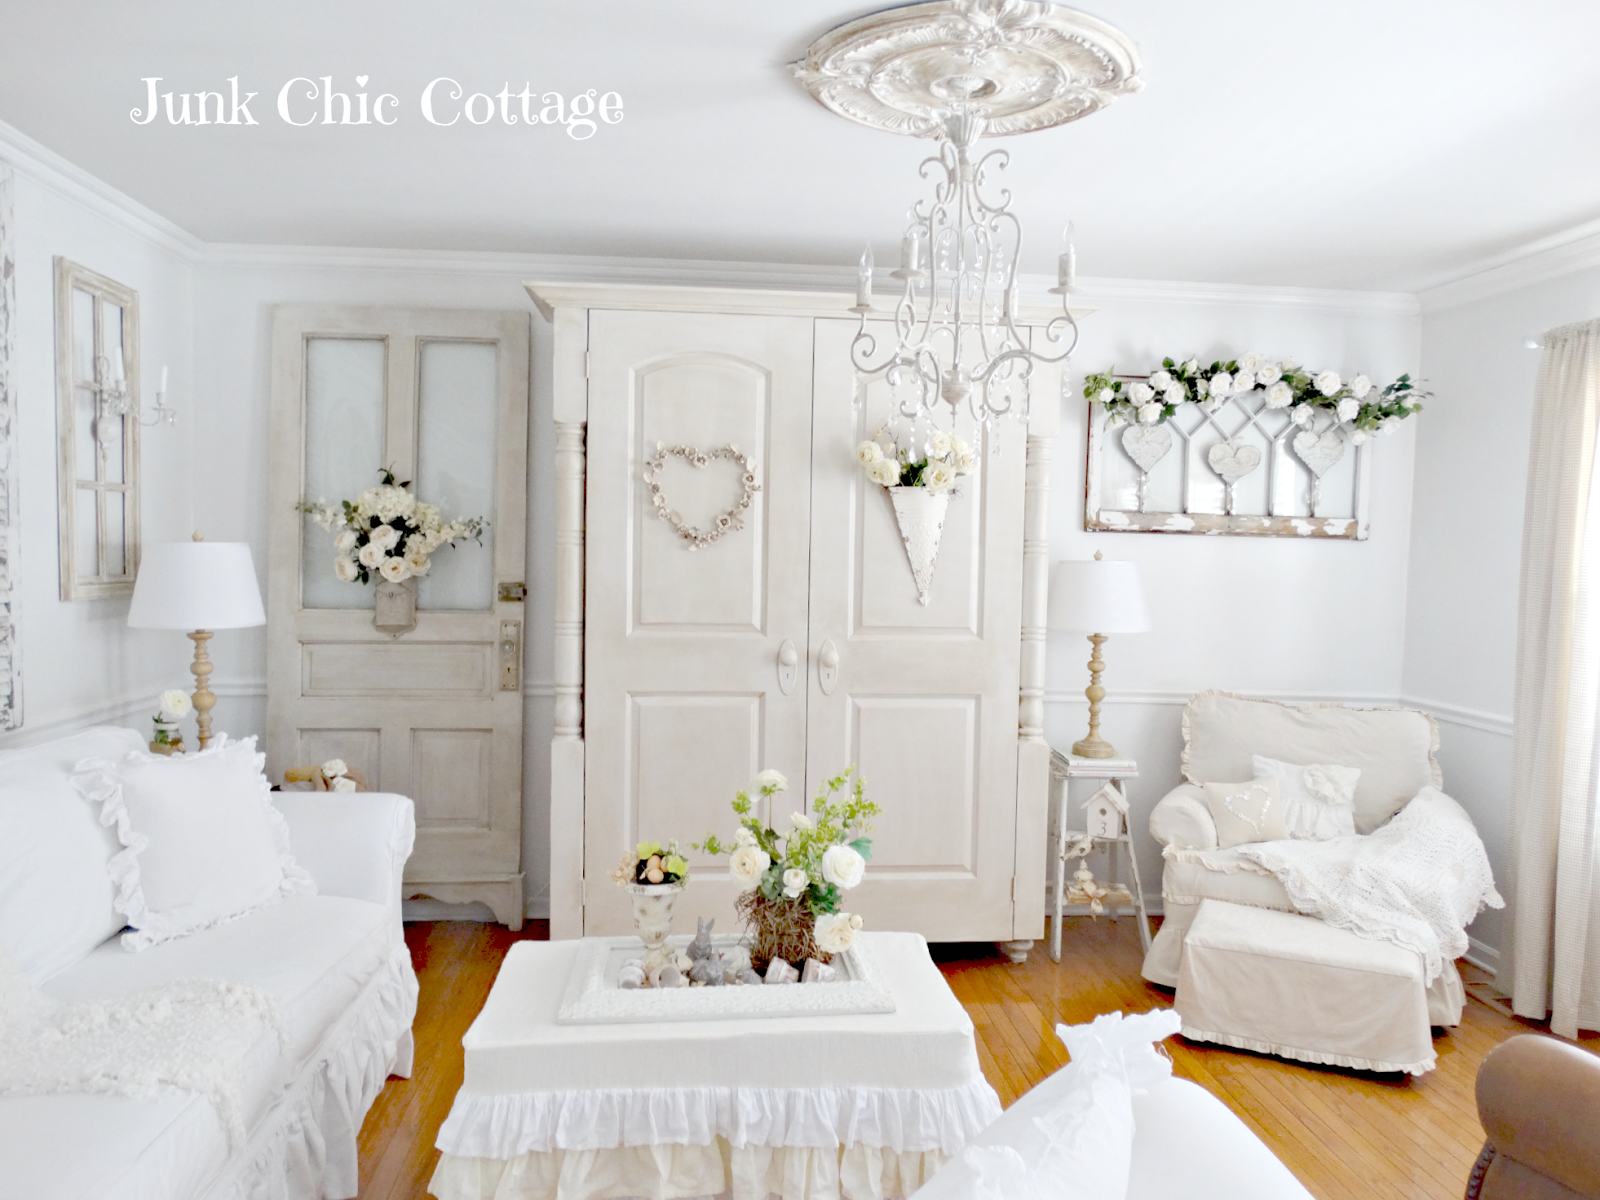 Junk Chic Cottage: Glazing is not just for donuts! | SHABBY CHIC ...